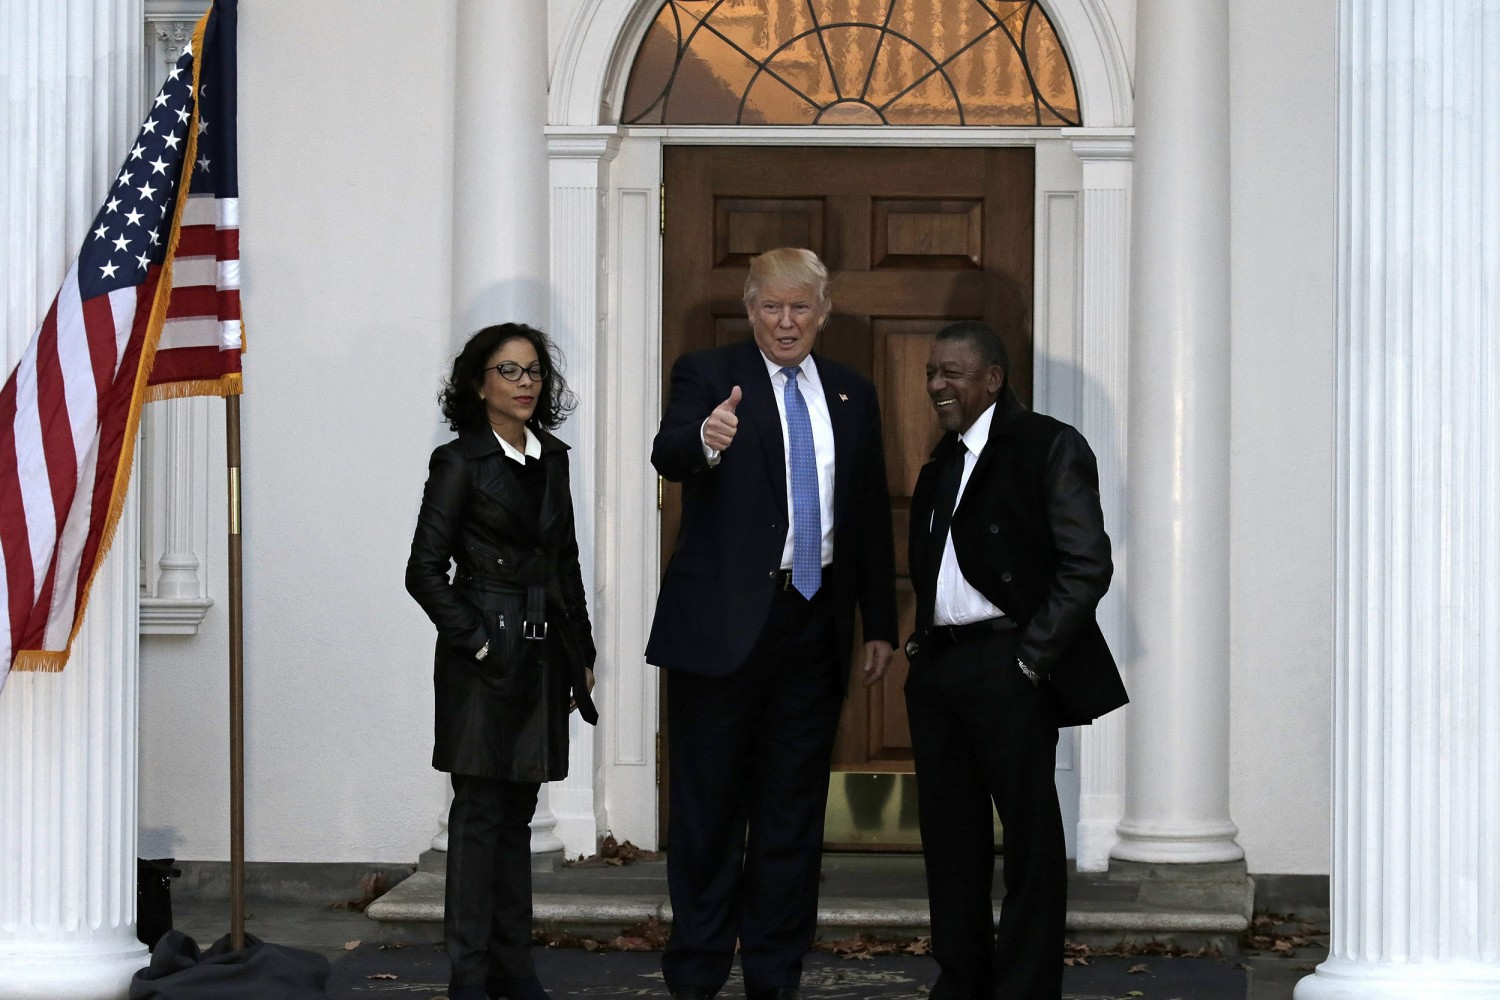 BET Founder Says Black Americans Should Give Trump a Chance